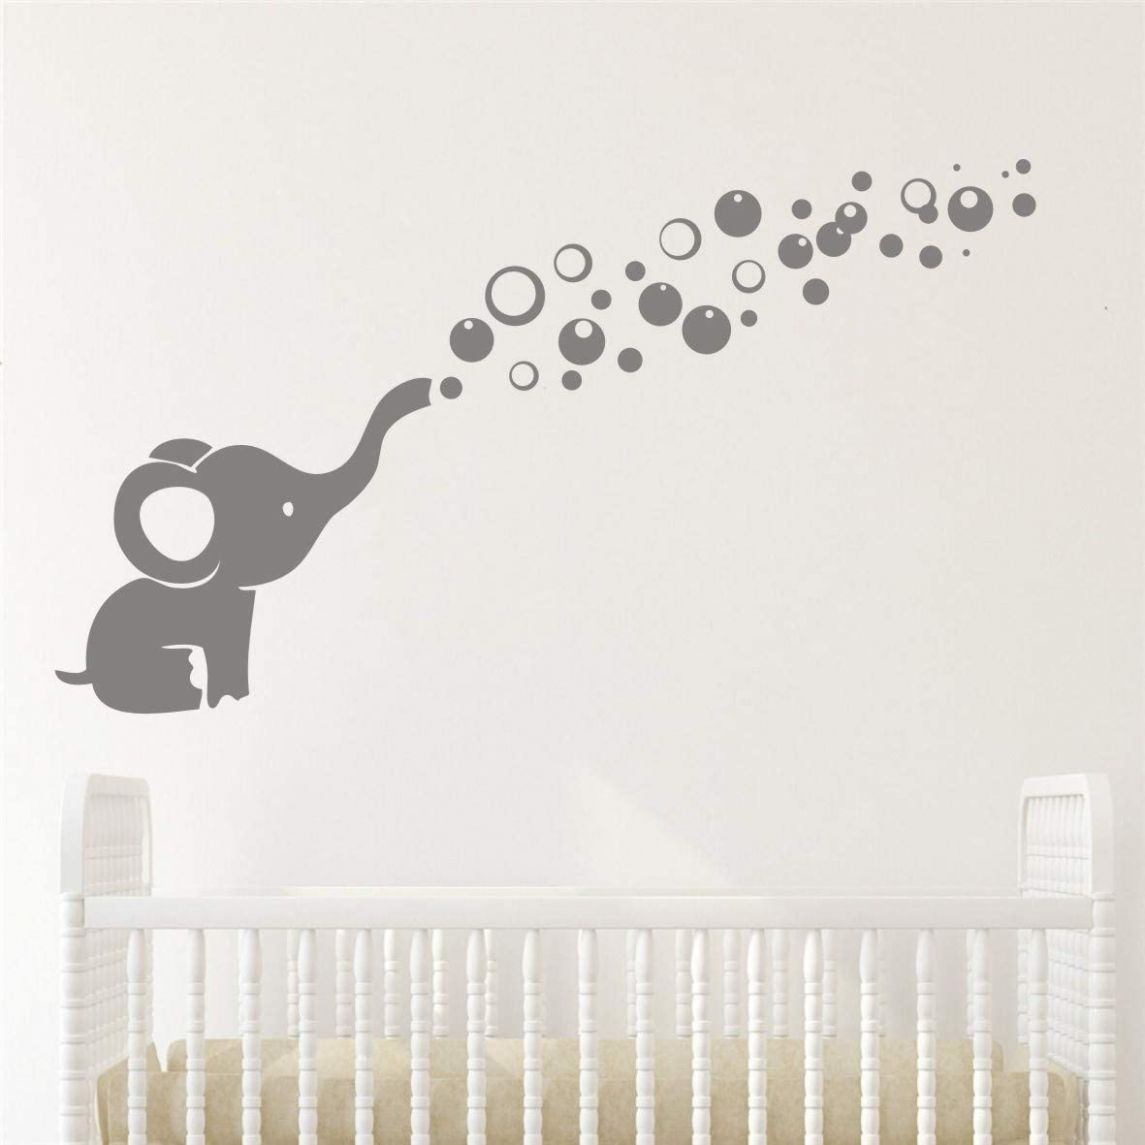 Removable Nursery Room Wall Decor Cute Elephant Blowing Bubbles Wall Decal  Art Vinyl Wall Decor Sticker for Baby Bedroom (Gray) - baby room elephant